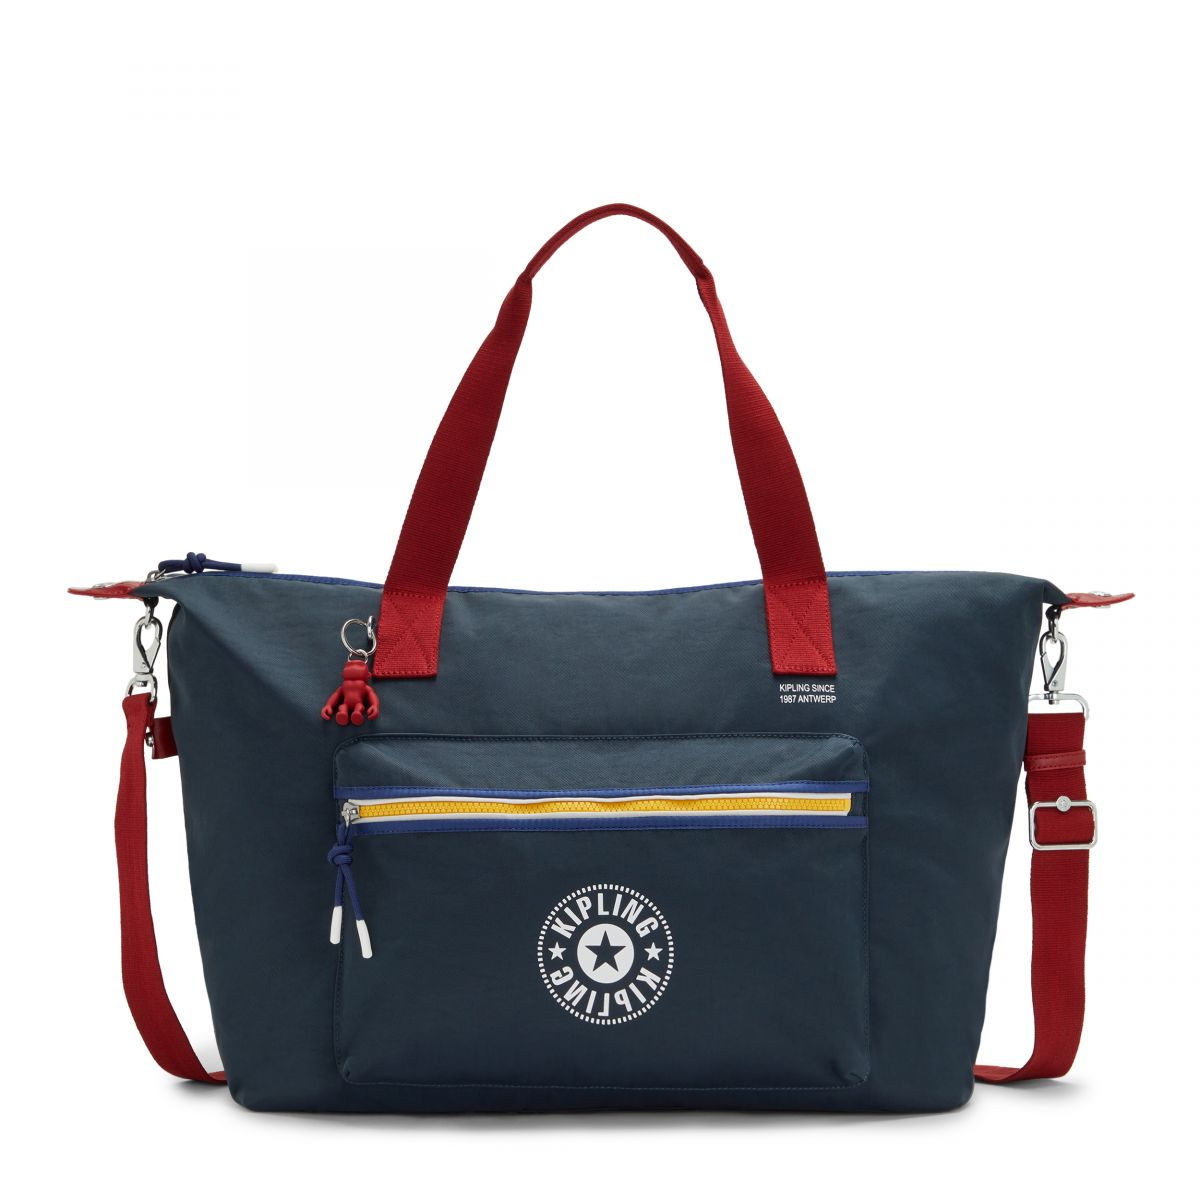 ART M P BAGS by Kipling - Front view